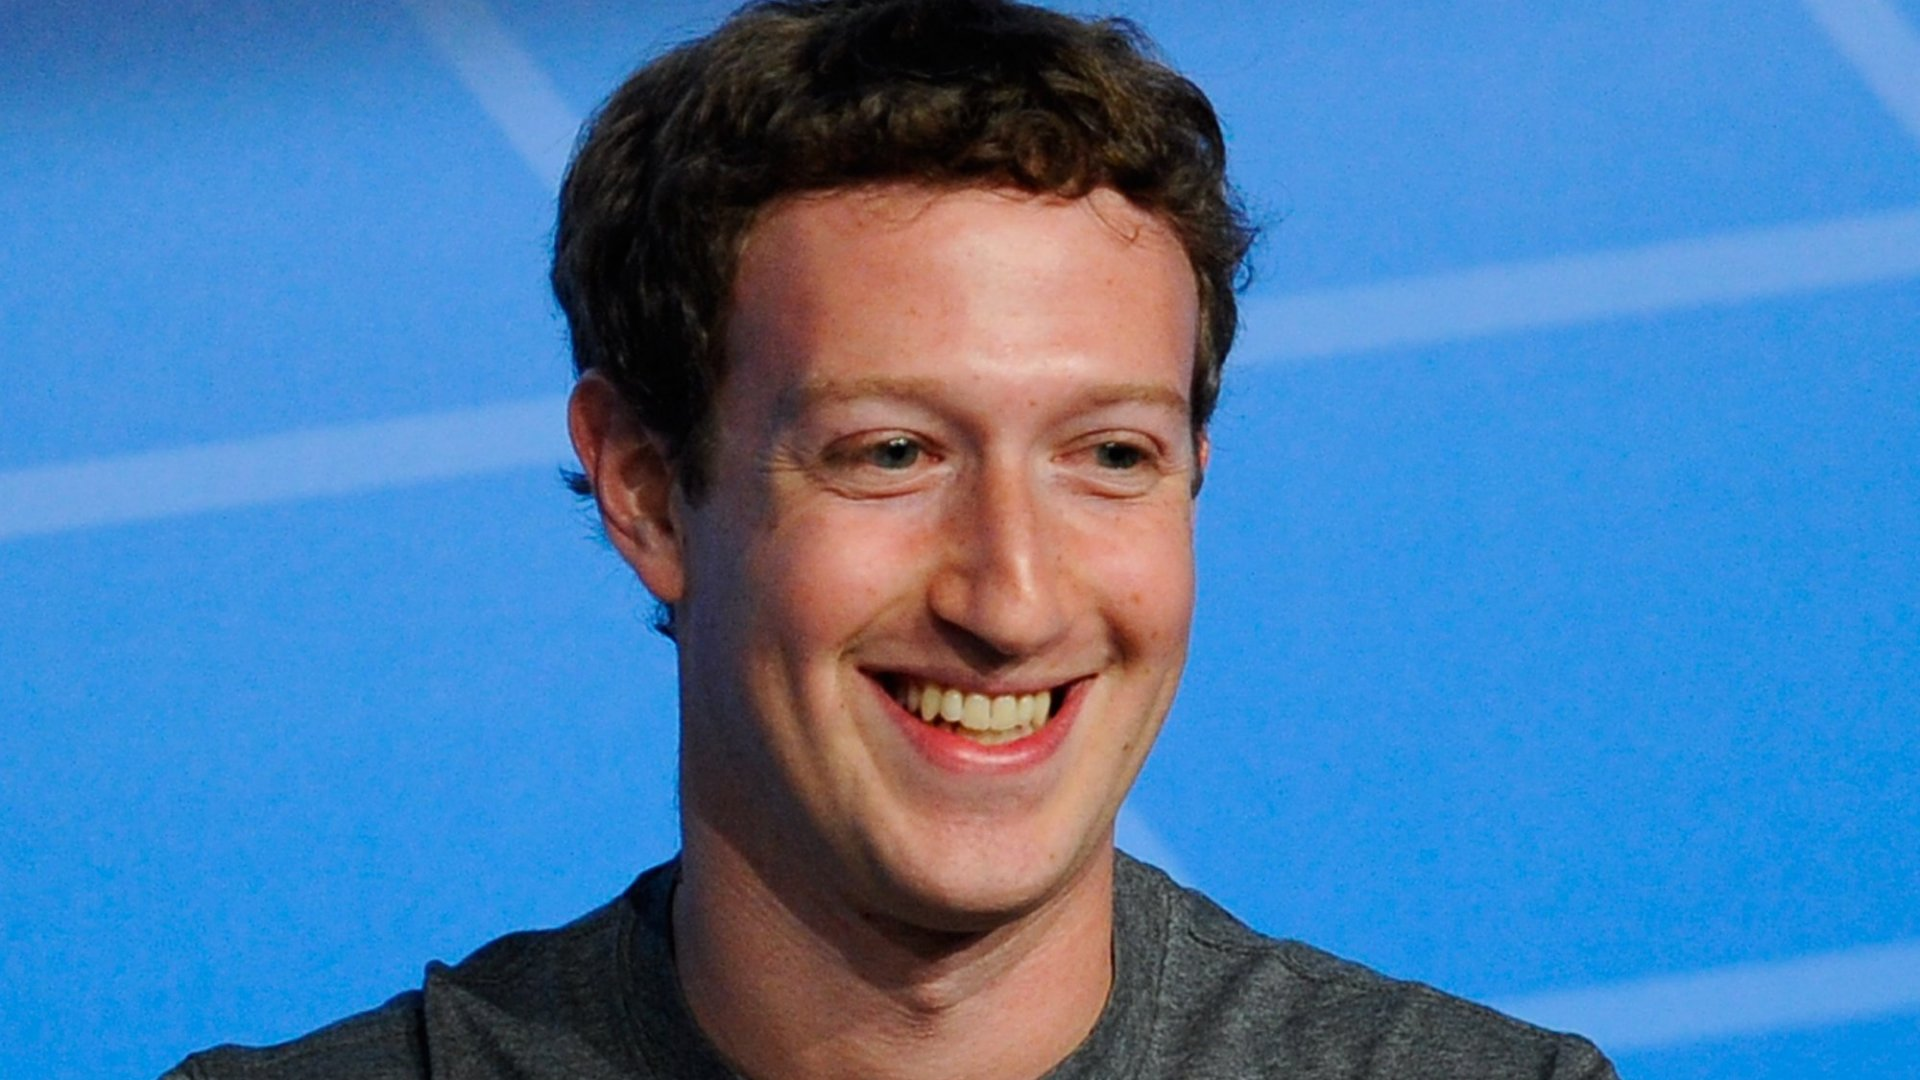 Mark Zuckerberg Is Now a Father